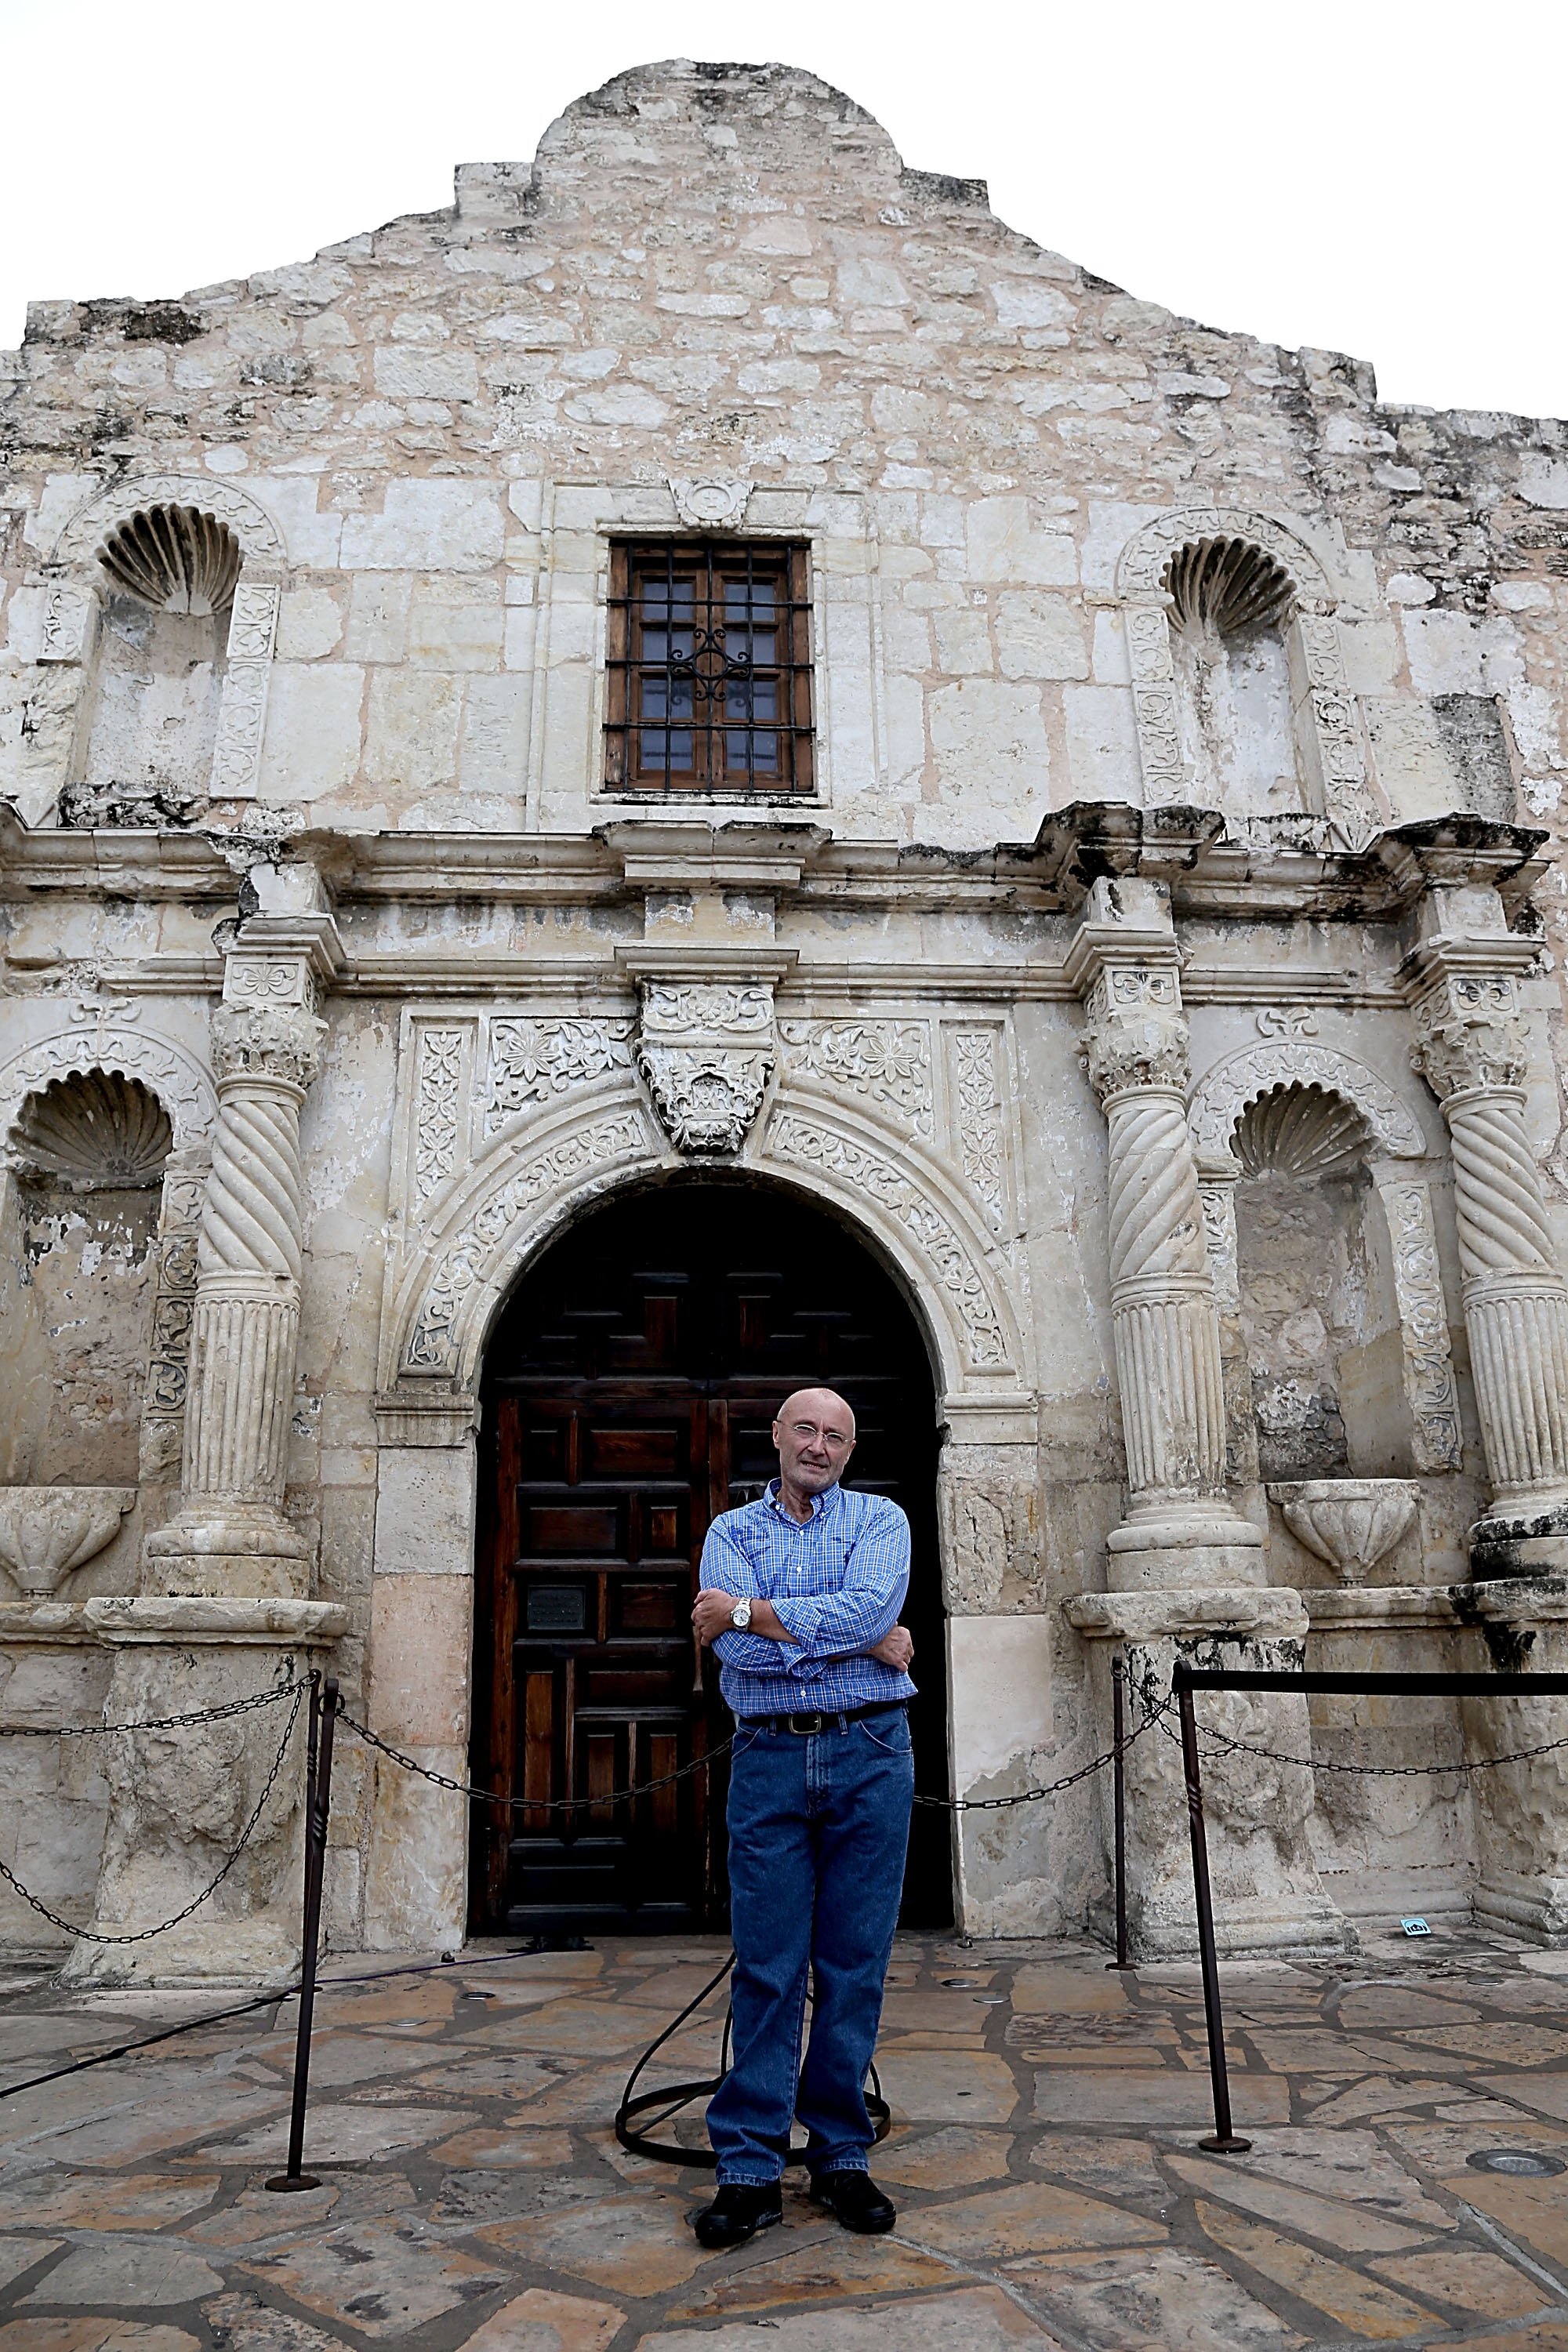 research papers on the alamo Download thesis statement on the alamo in our database or order an original thesis paper that will be written by one of our staff writers and delivered according to the deadline.